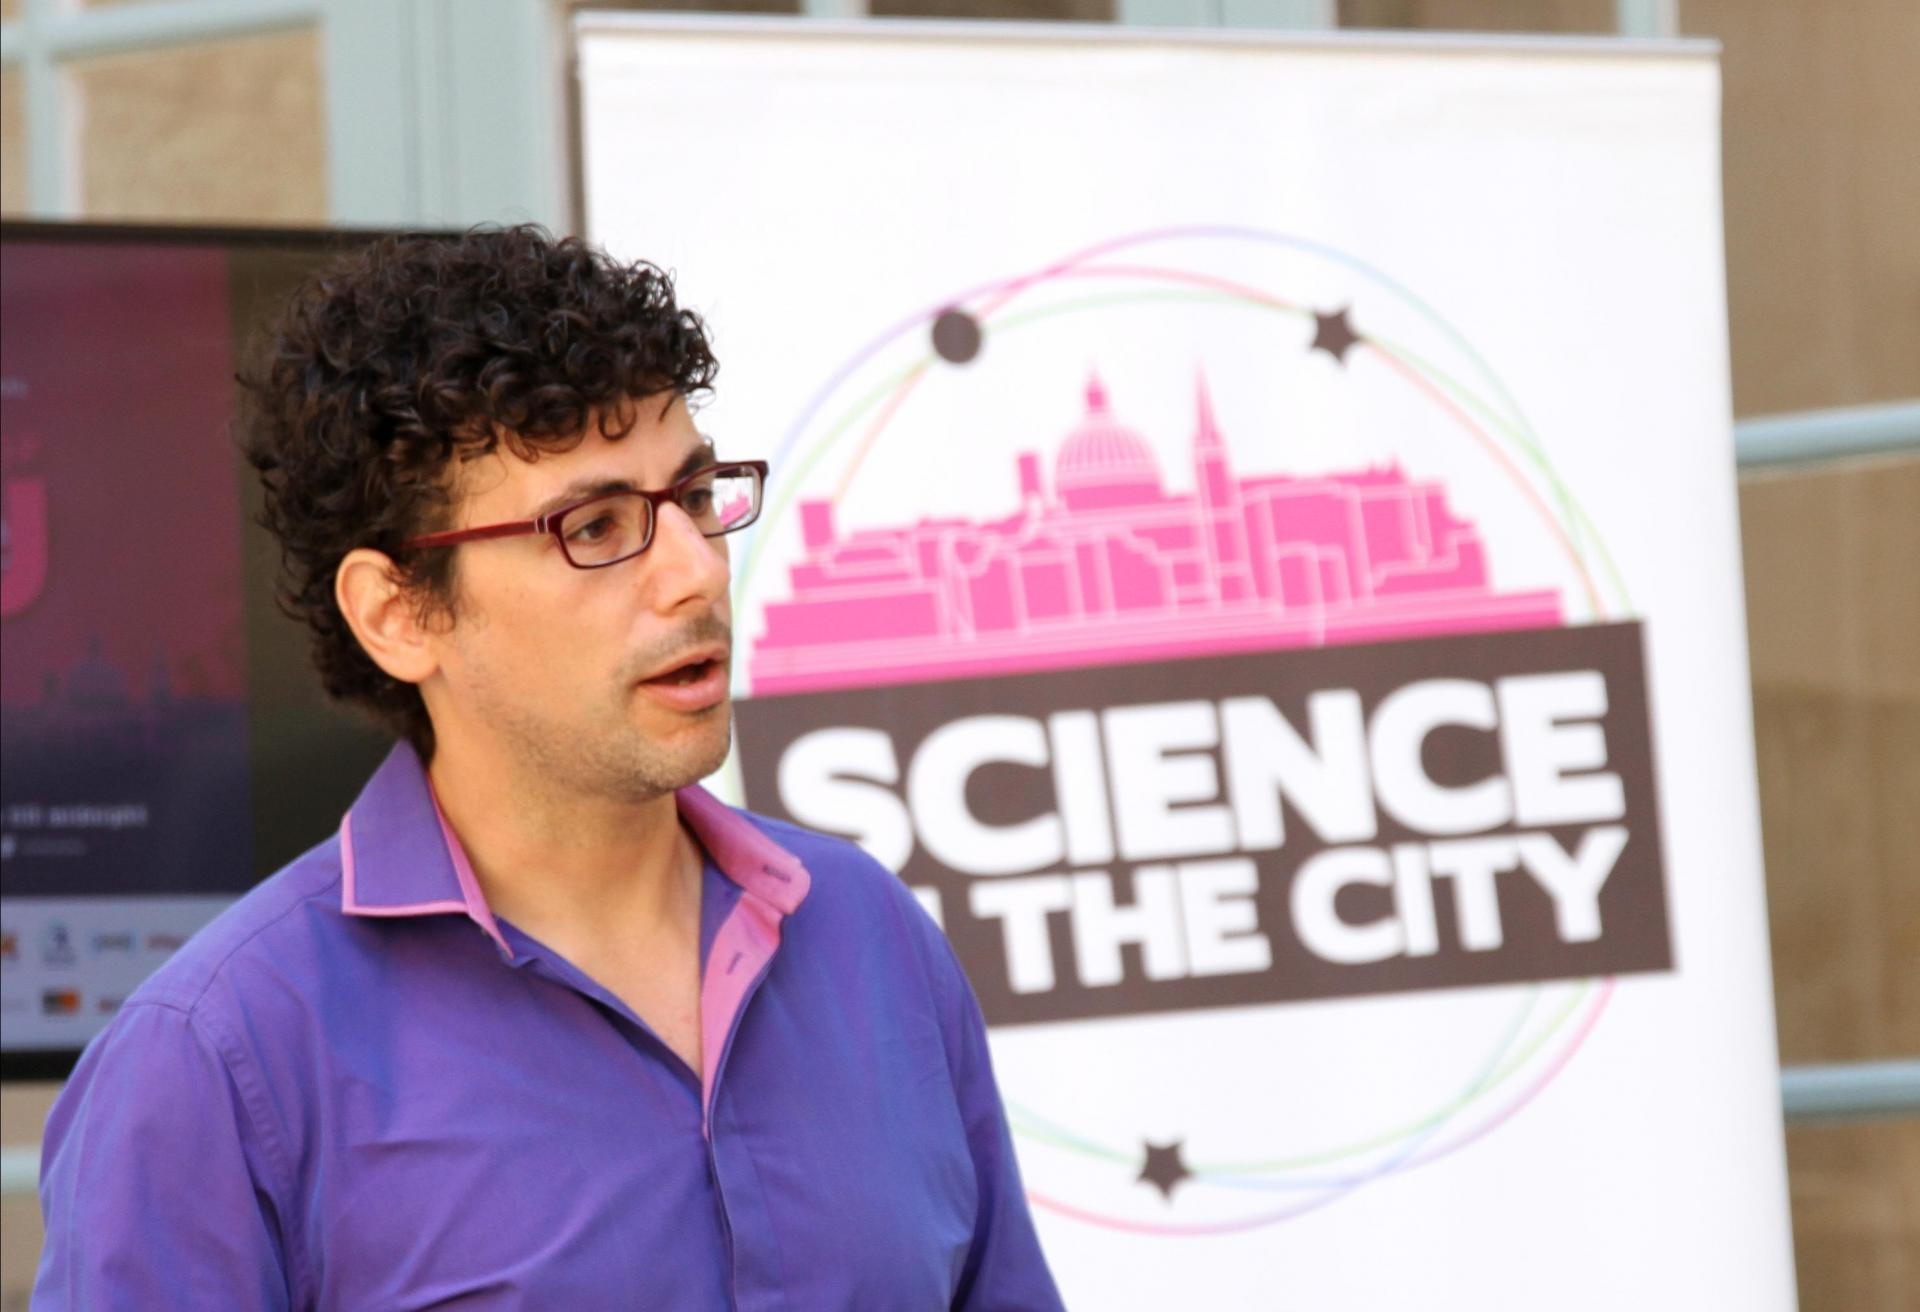 Science in the City founder Edward Duca speaking at a press conference launching this year's event.